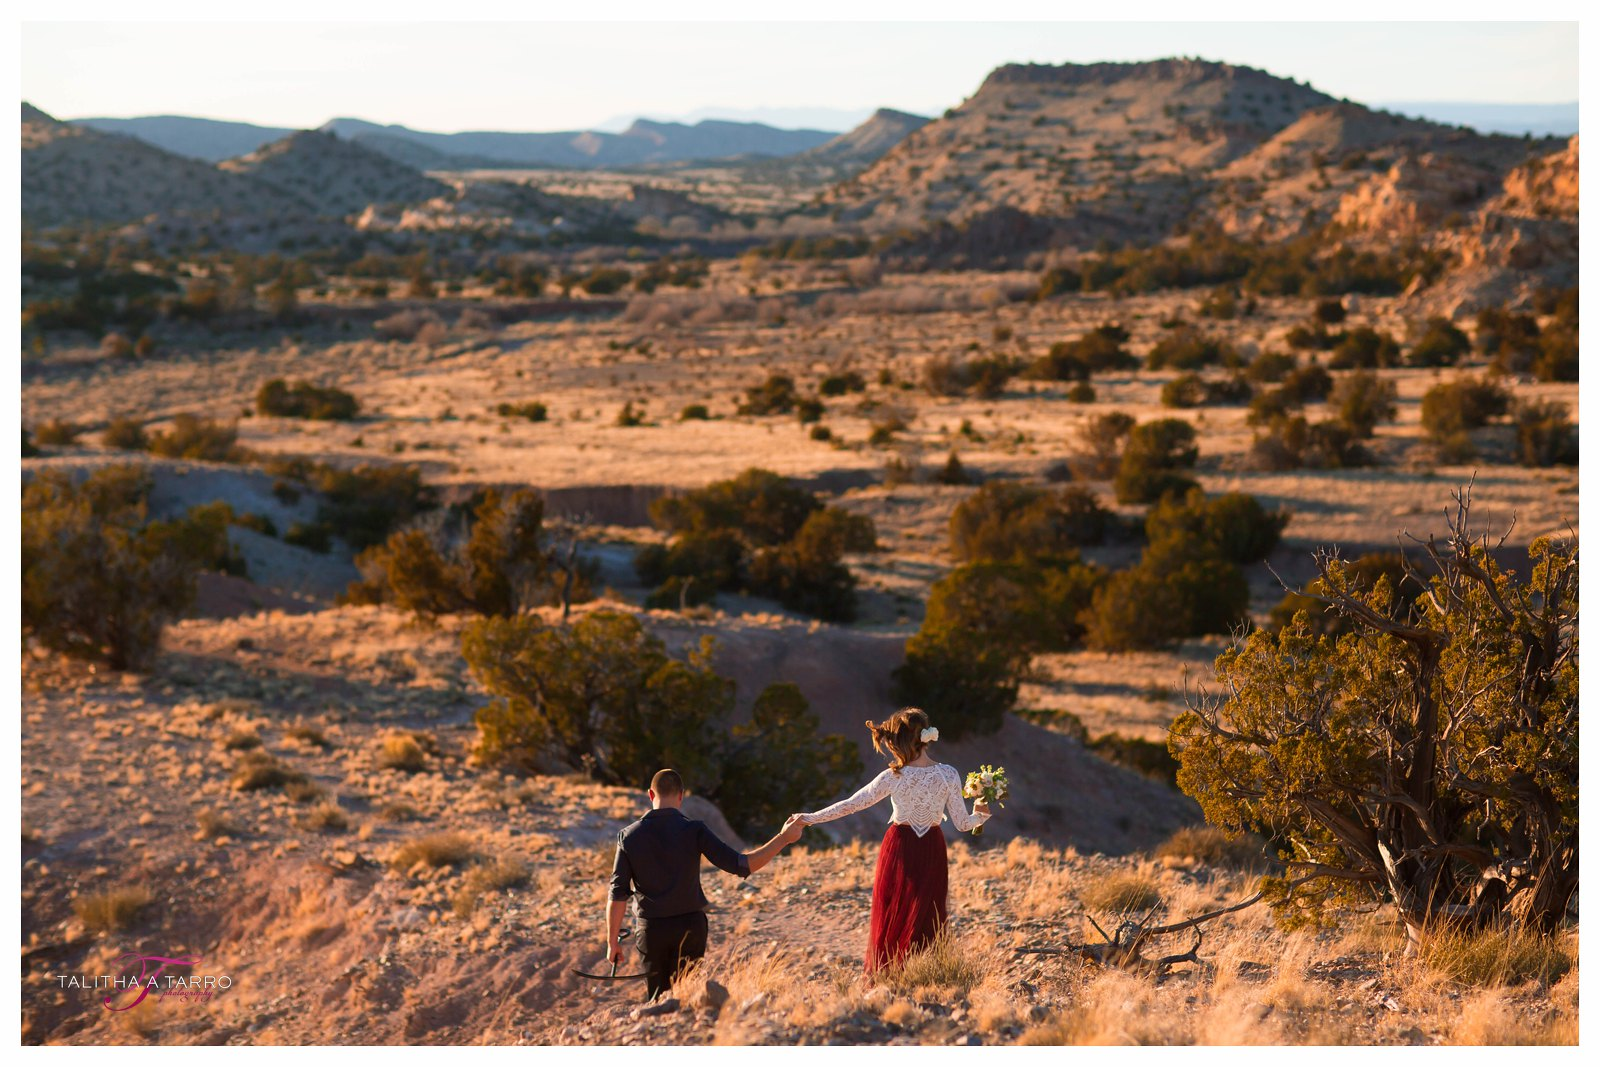 Shonna  Codys Elopement in the high desert of New Mexico